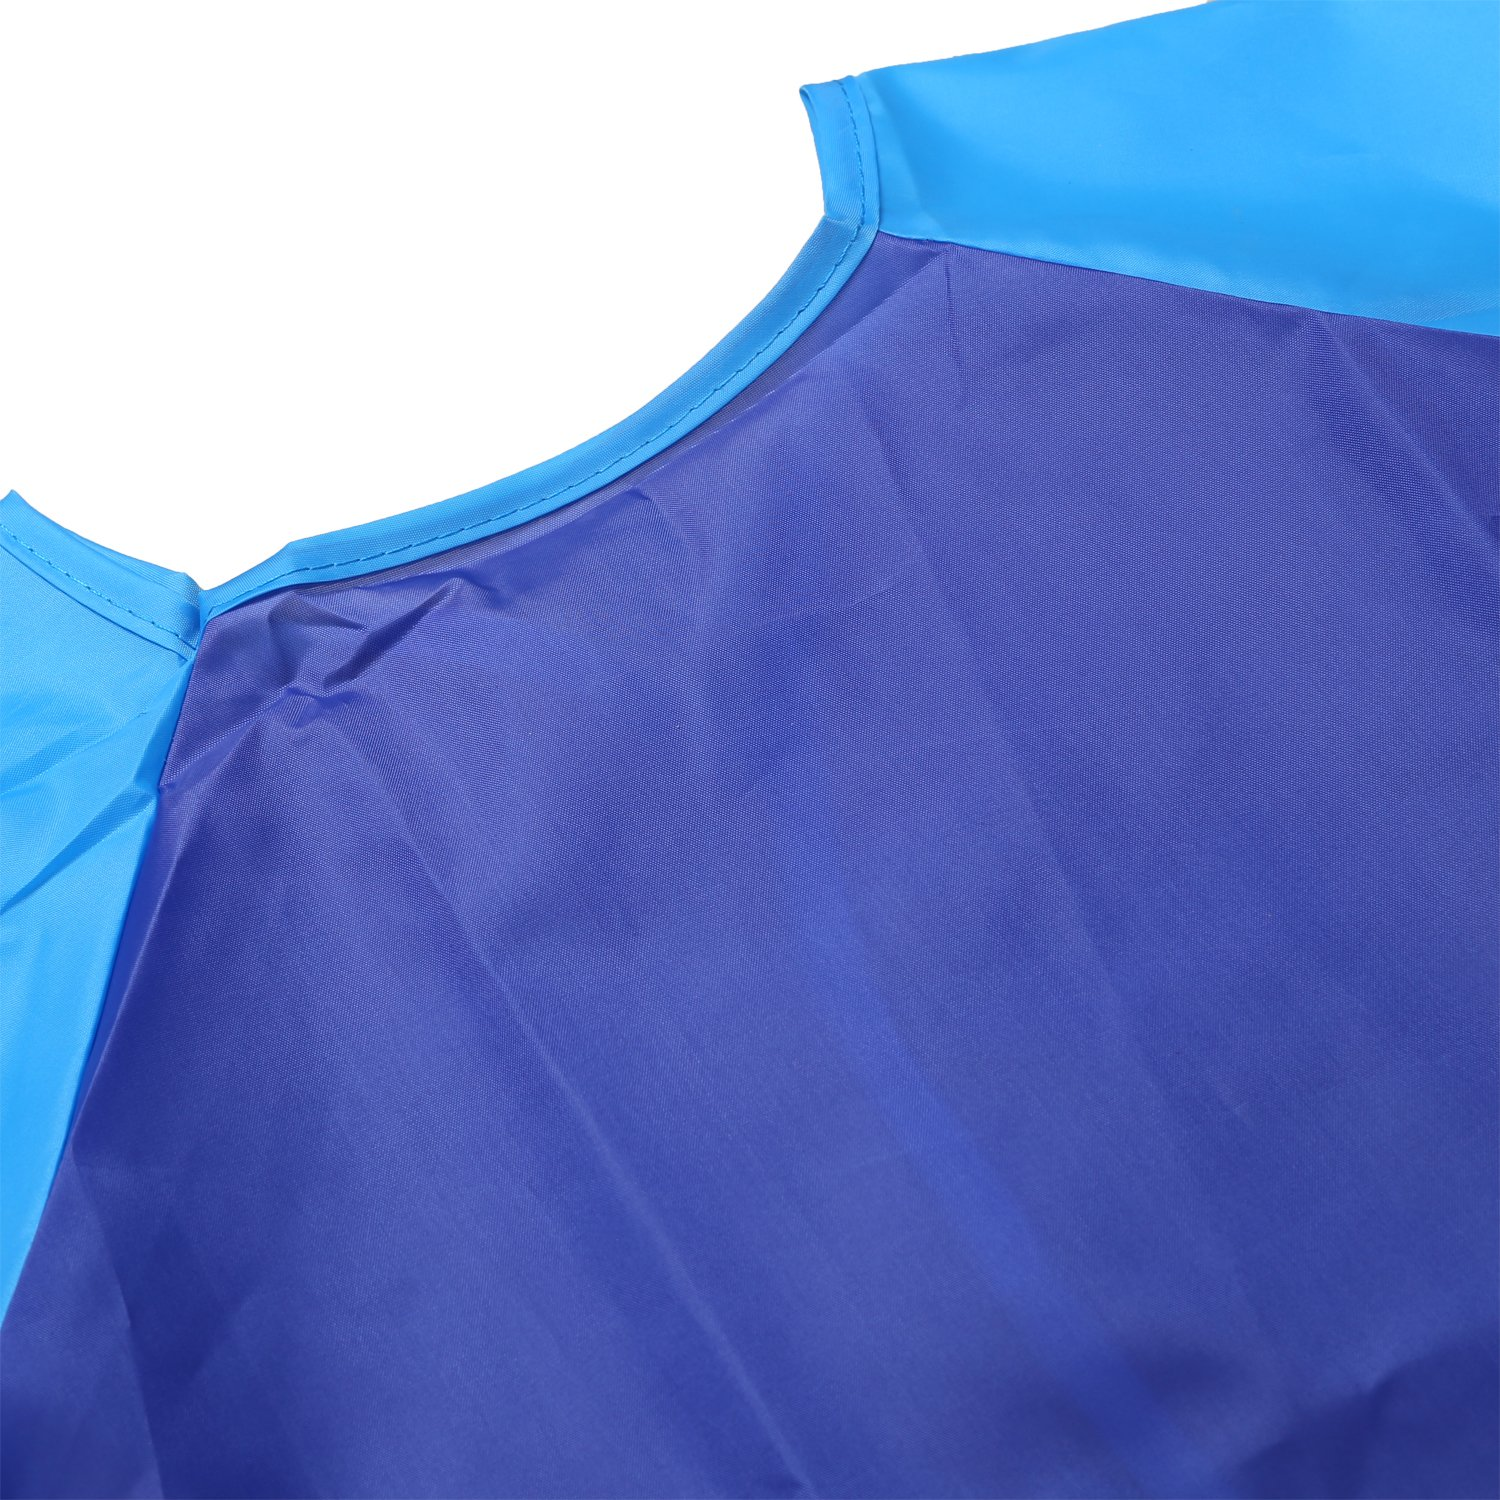 NEWSTYLE Childrens Art Smock Long Sleeve Waterproof Kids Painting Apron for School Classroom and Kitchen Blue